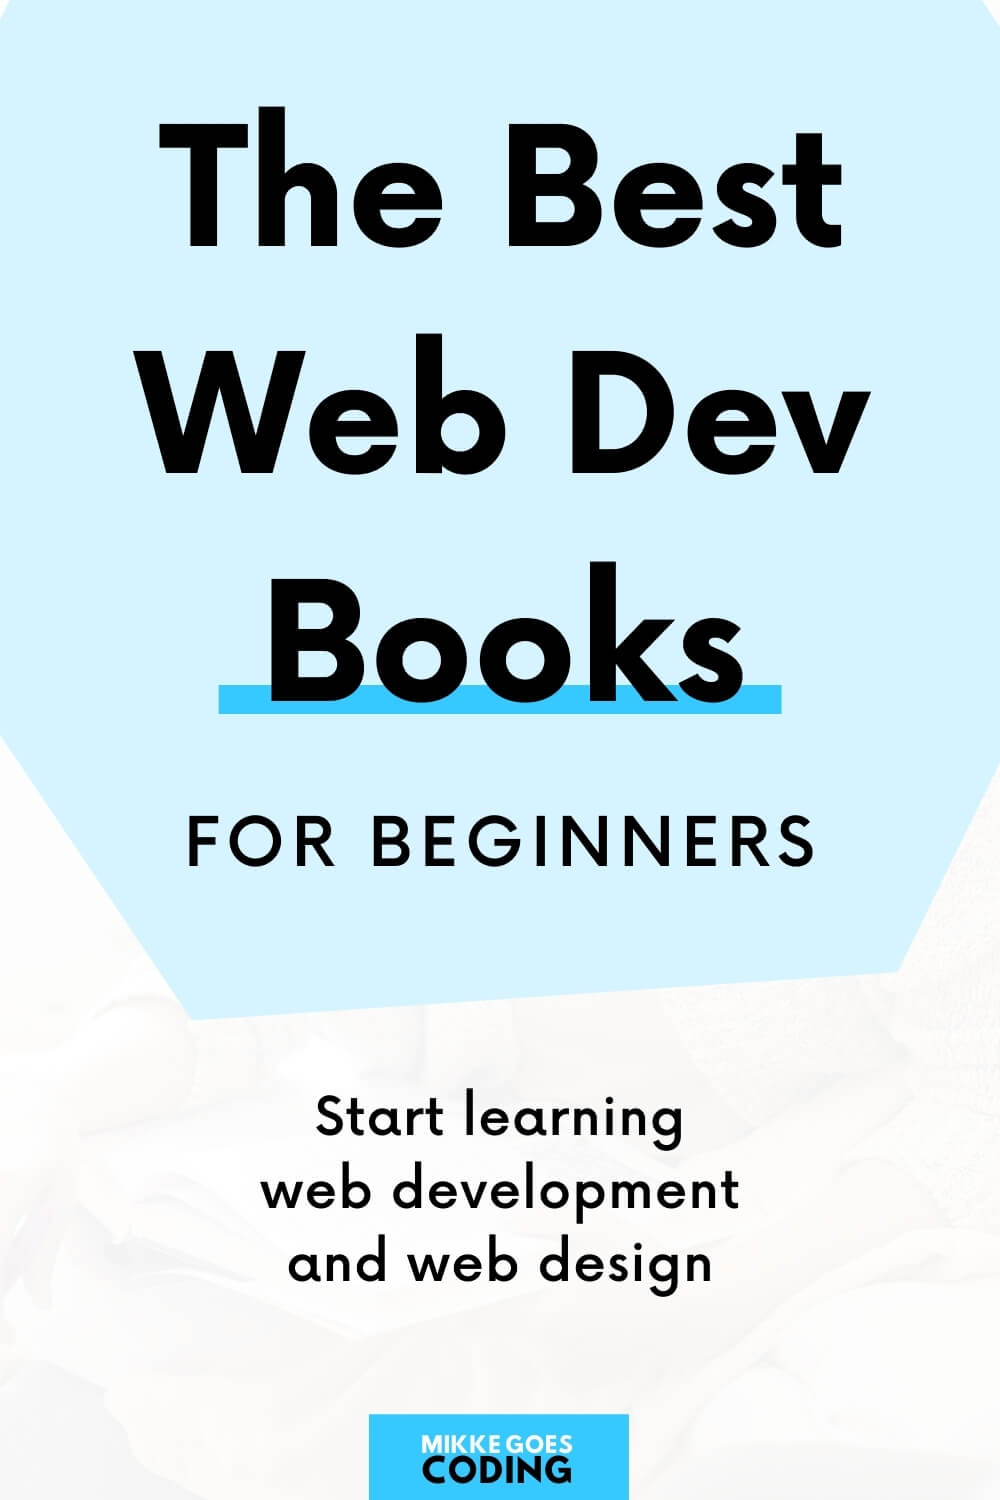 The best web development and web design books for beginners